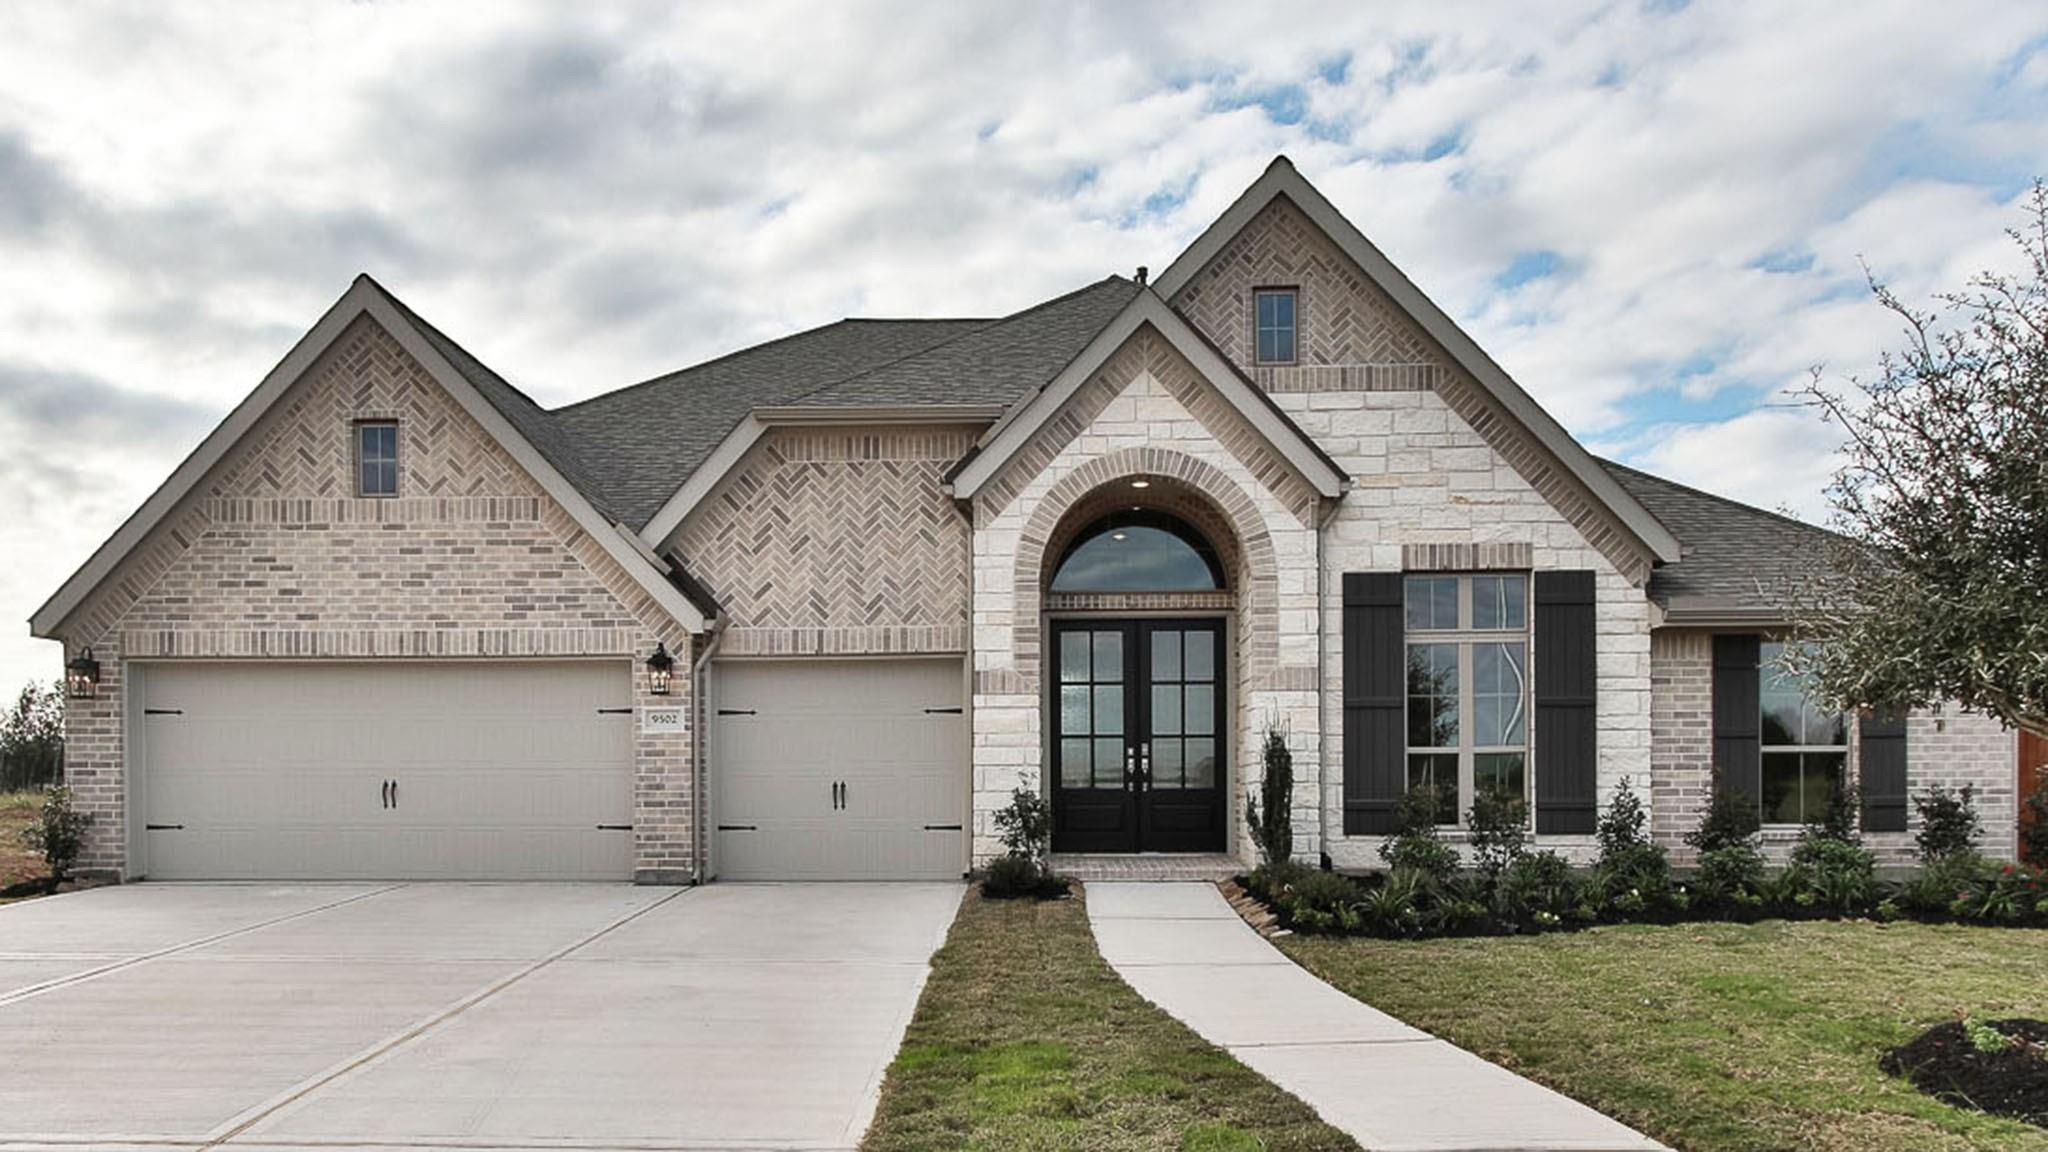 9502 Sanger Way Property Photo - Iowa Colony, TX real estate listing